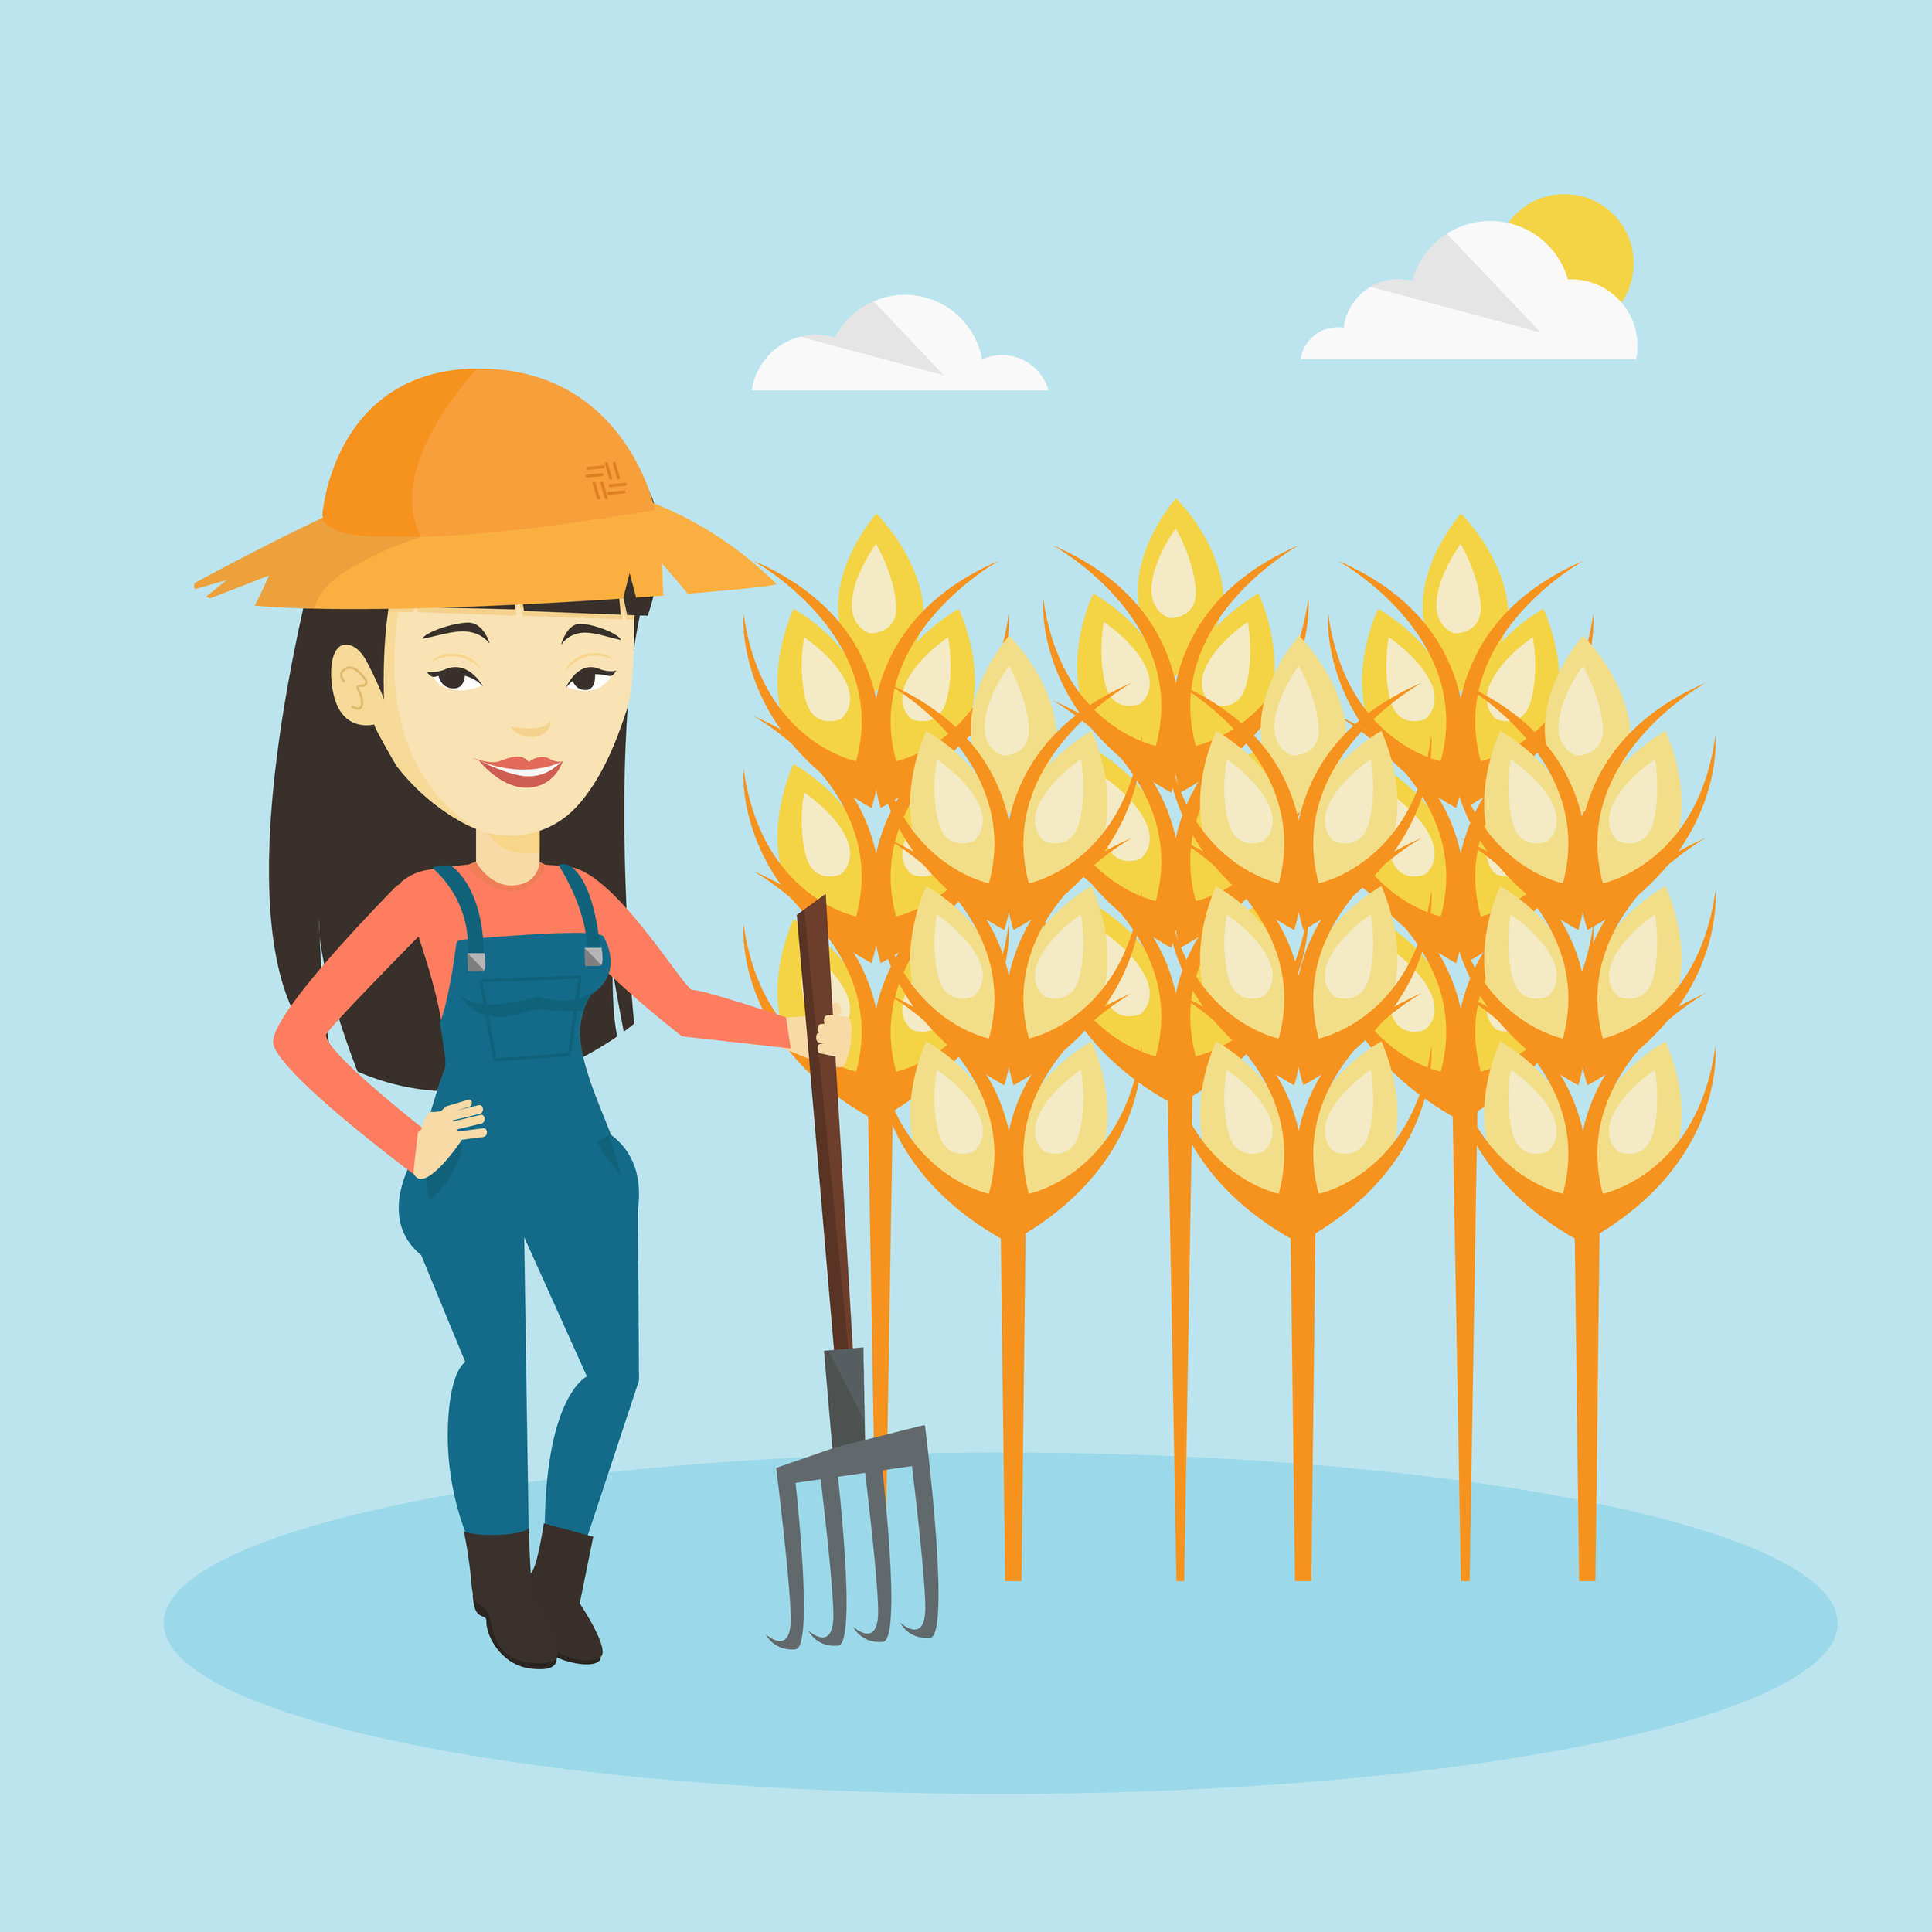 graphicstock-happy-asian-farmer-in-summer-hat-standing-with-a-pitchfork-on-the-background-of-wheat-field-female-farmer-working-with-pitchfork-in-wheat-field-vector-flat-design-illustration-square-layout_H776GvI8Z_L.jpg